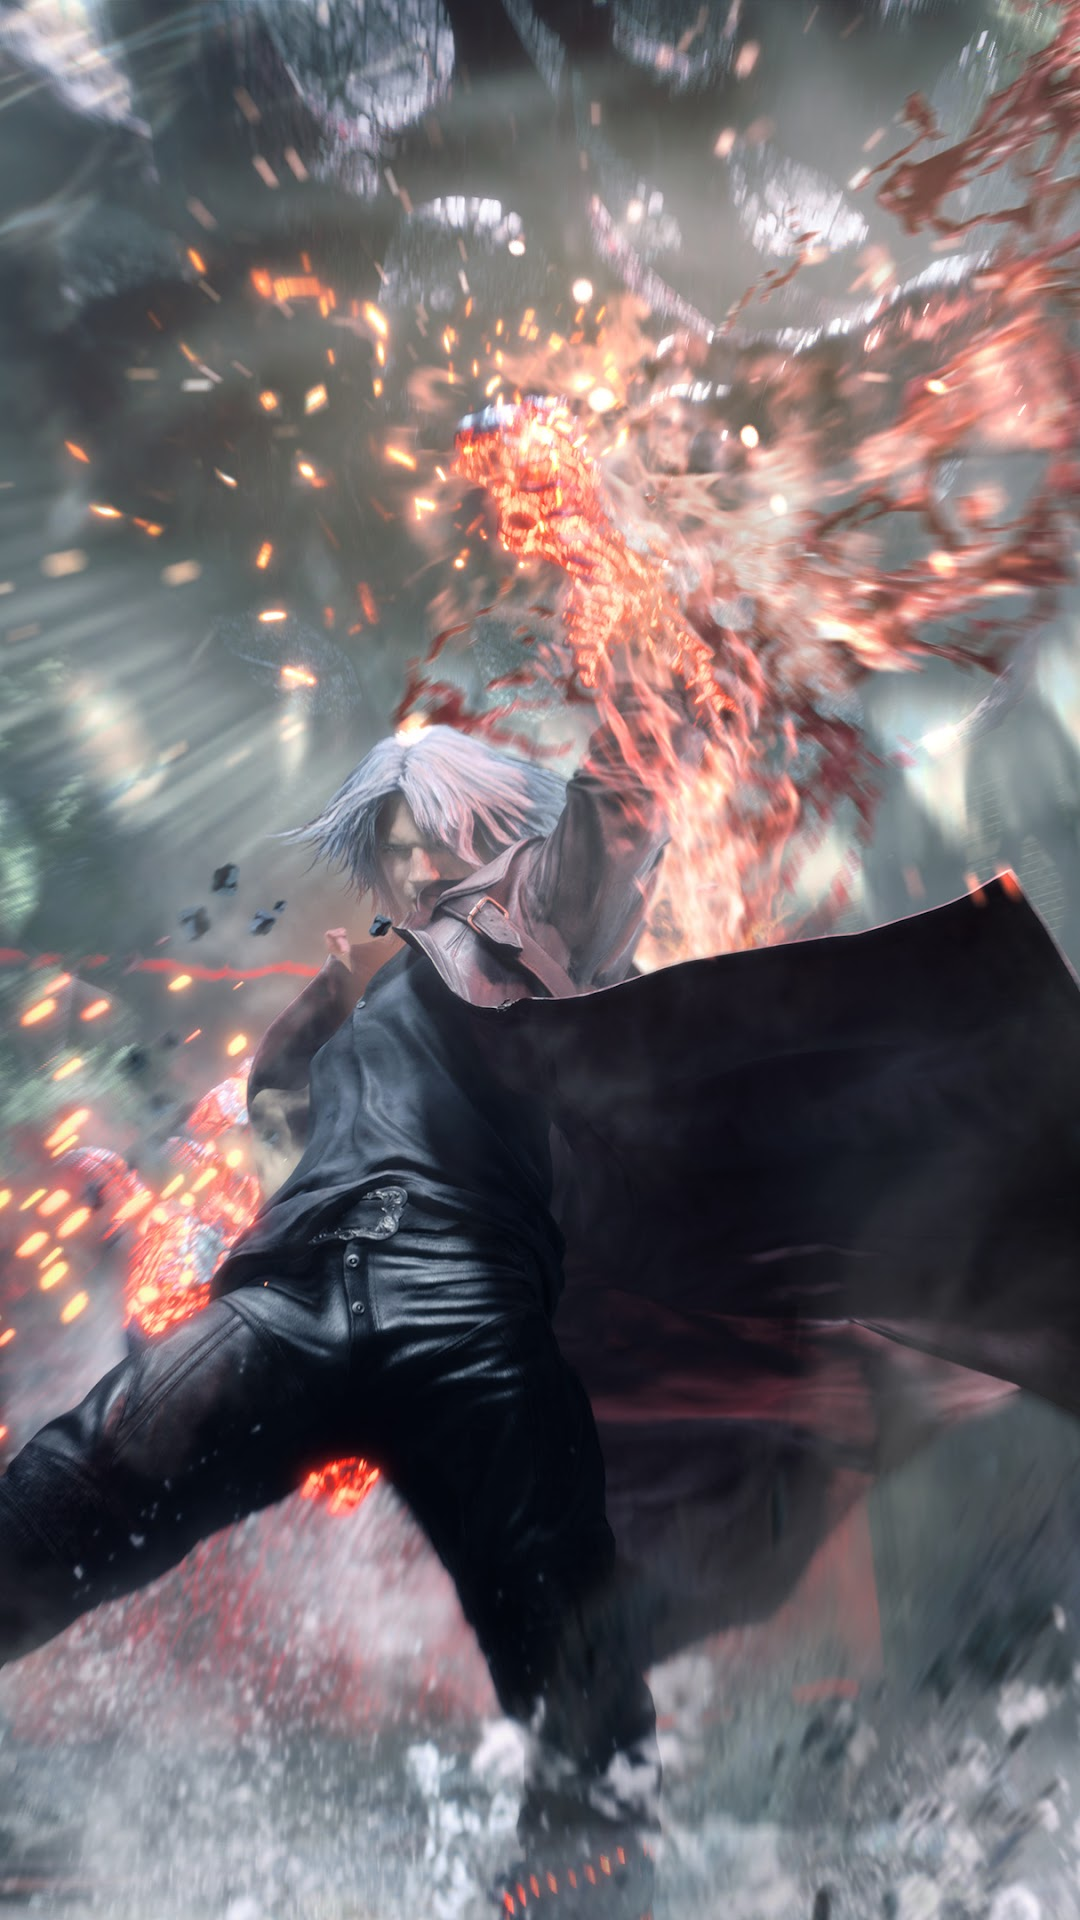 dante balrog devil arm devil may cry 5 4k wallpaper 5 dante balrog devil arm devil may cry 5